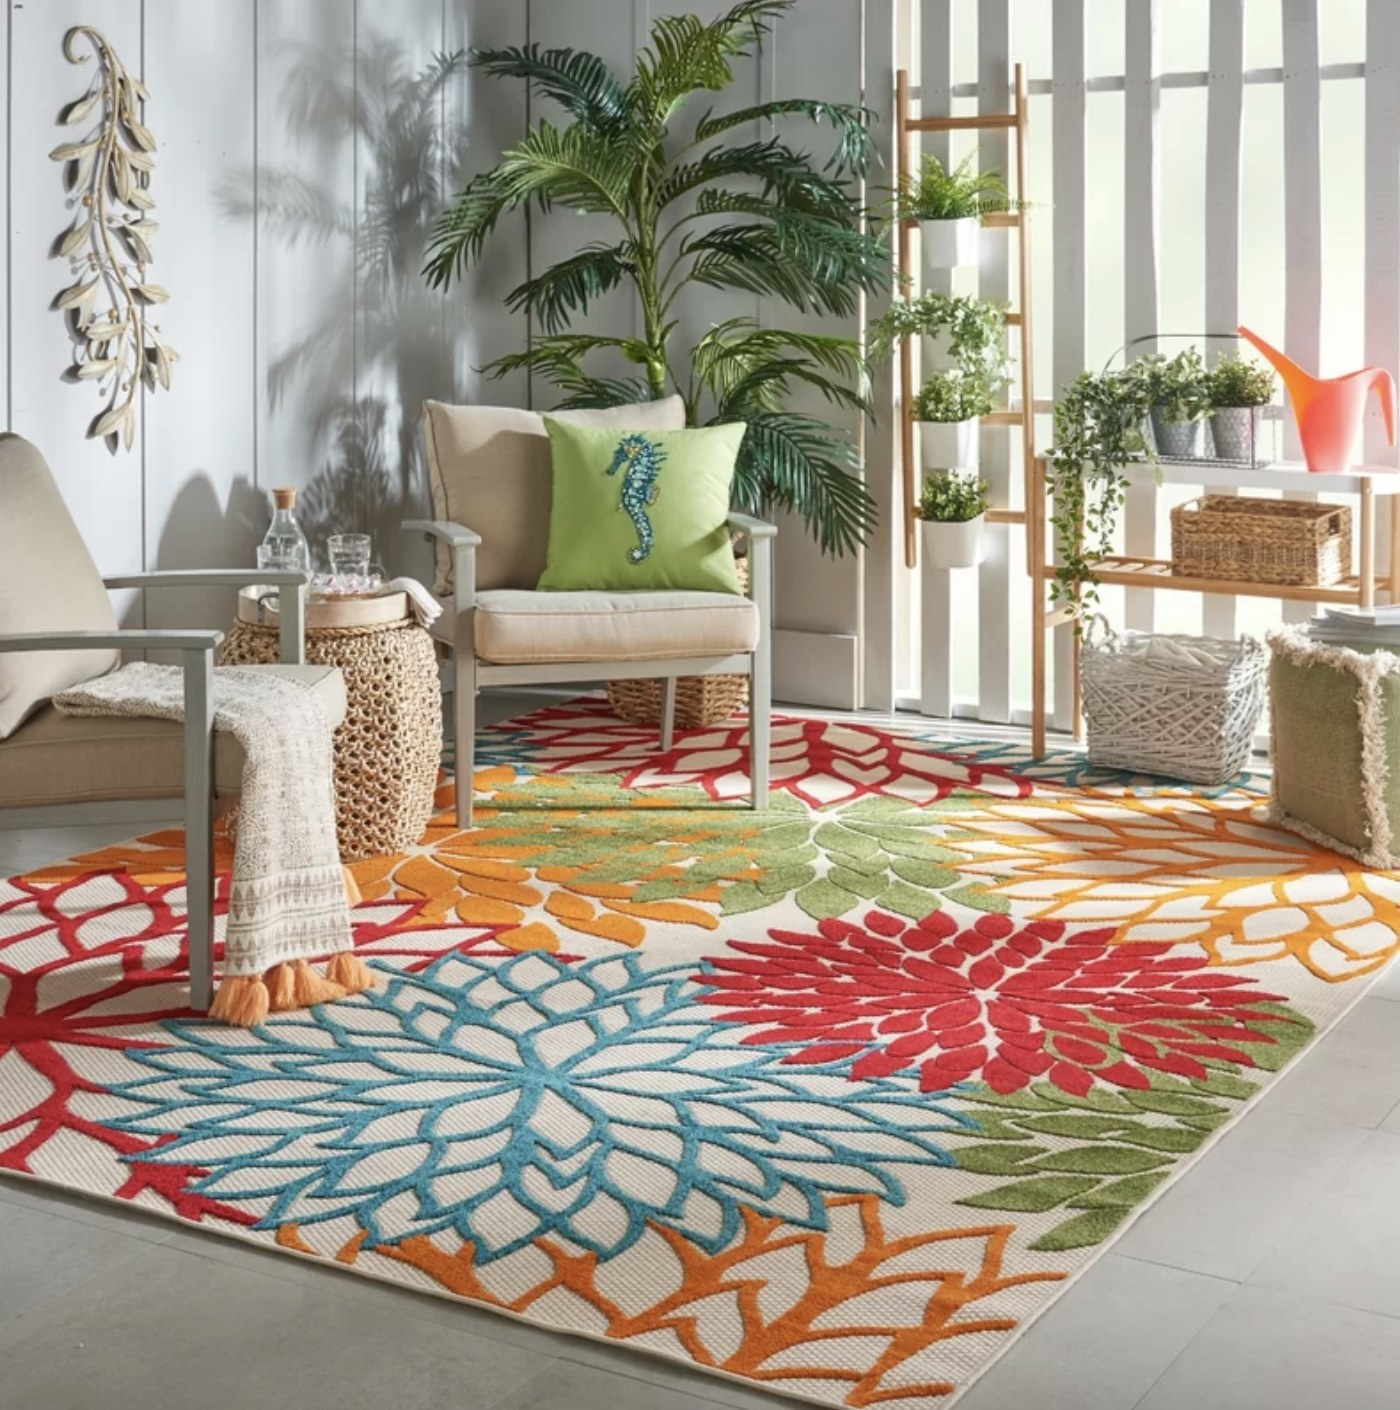 the rug in the color multi in a living room